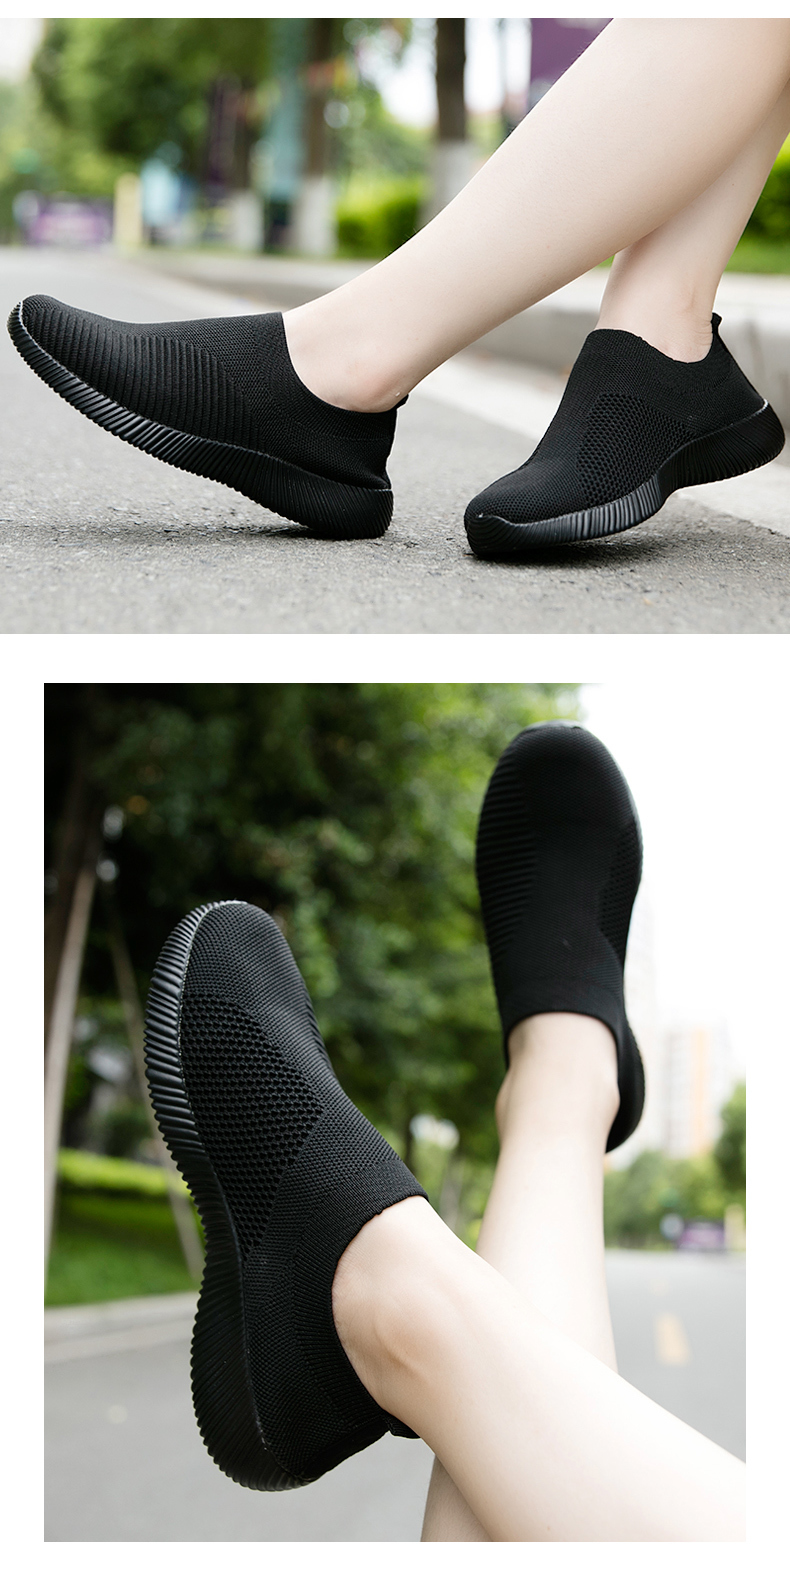 Slip On Flying Knit Women Fashion Sneakers Breathable Flat Heel Casual Shoes Round Toe Low Top Women Shoes XU034 (22)